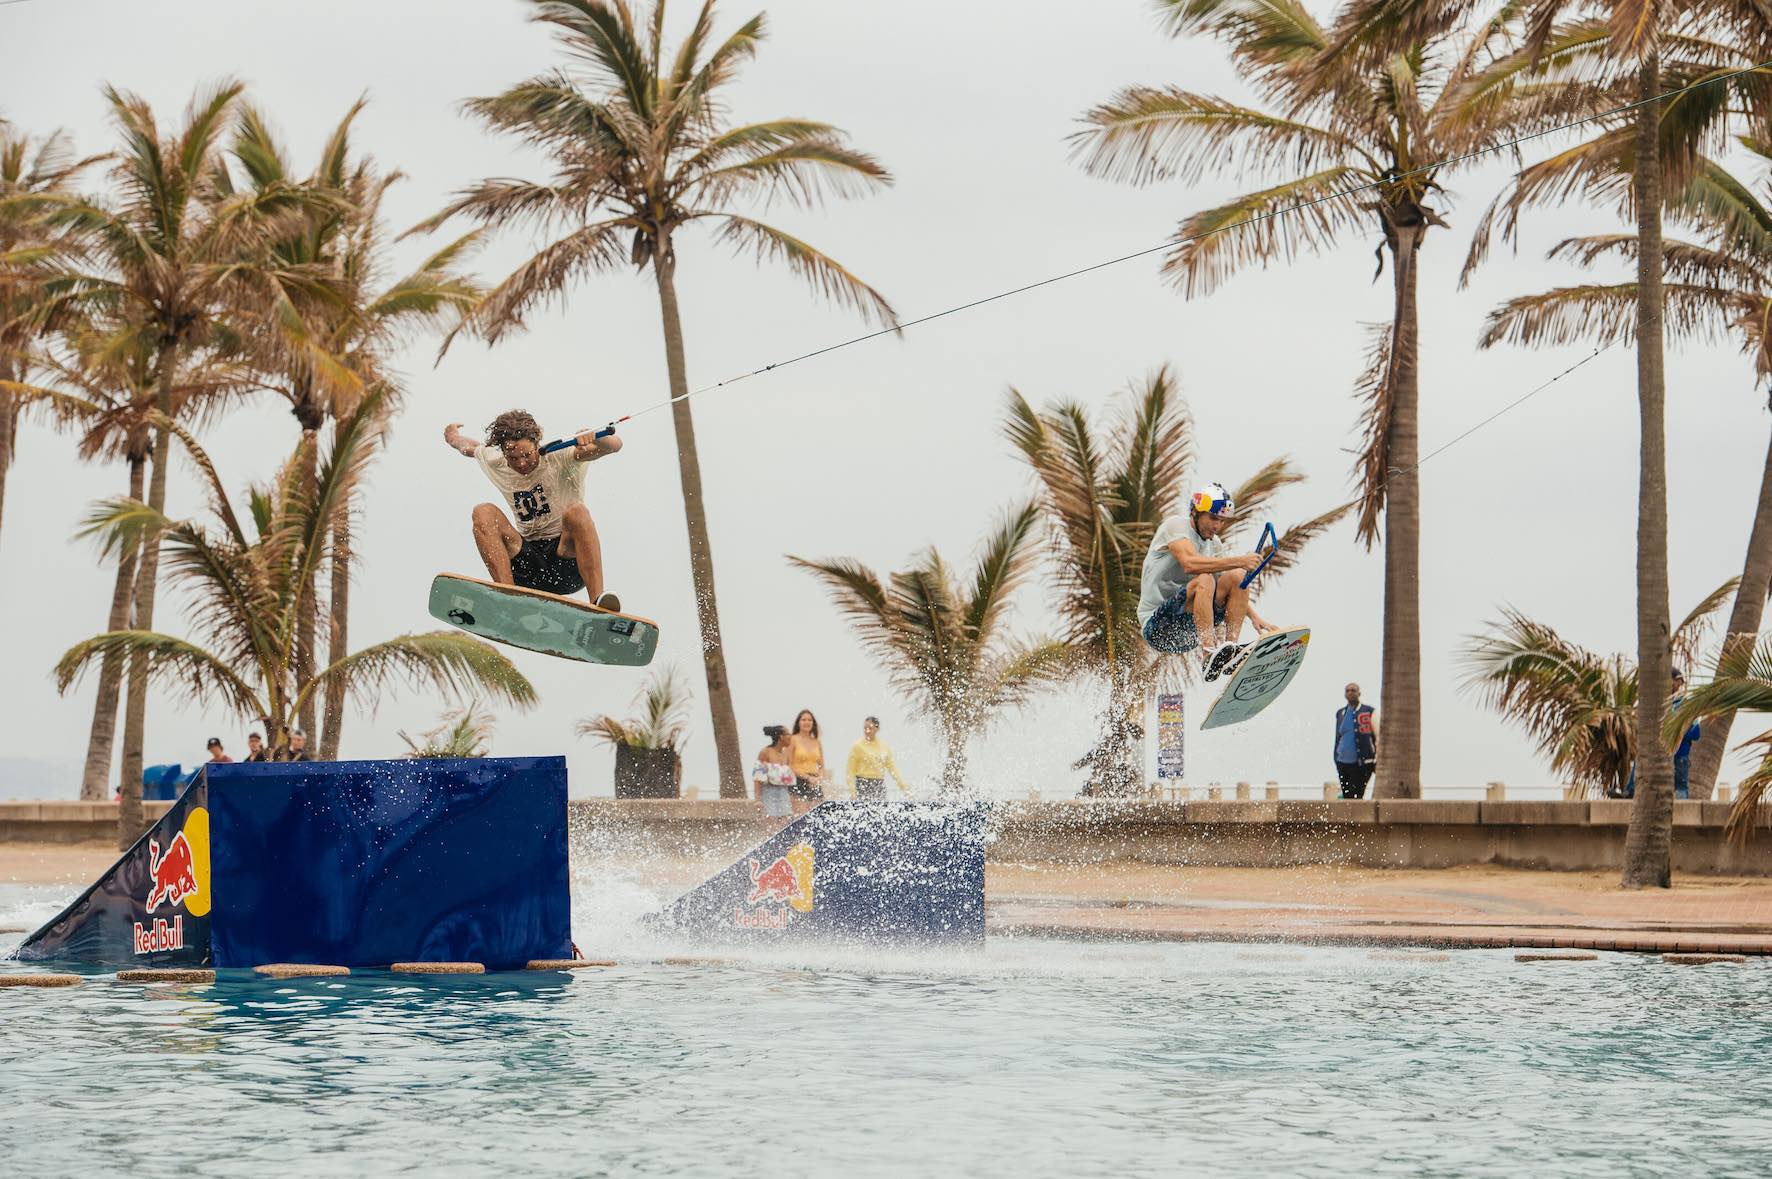 Brian Grubb and Matti Buys wakeskating Durban beachfront for the Red Bull Reflections project